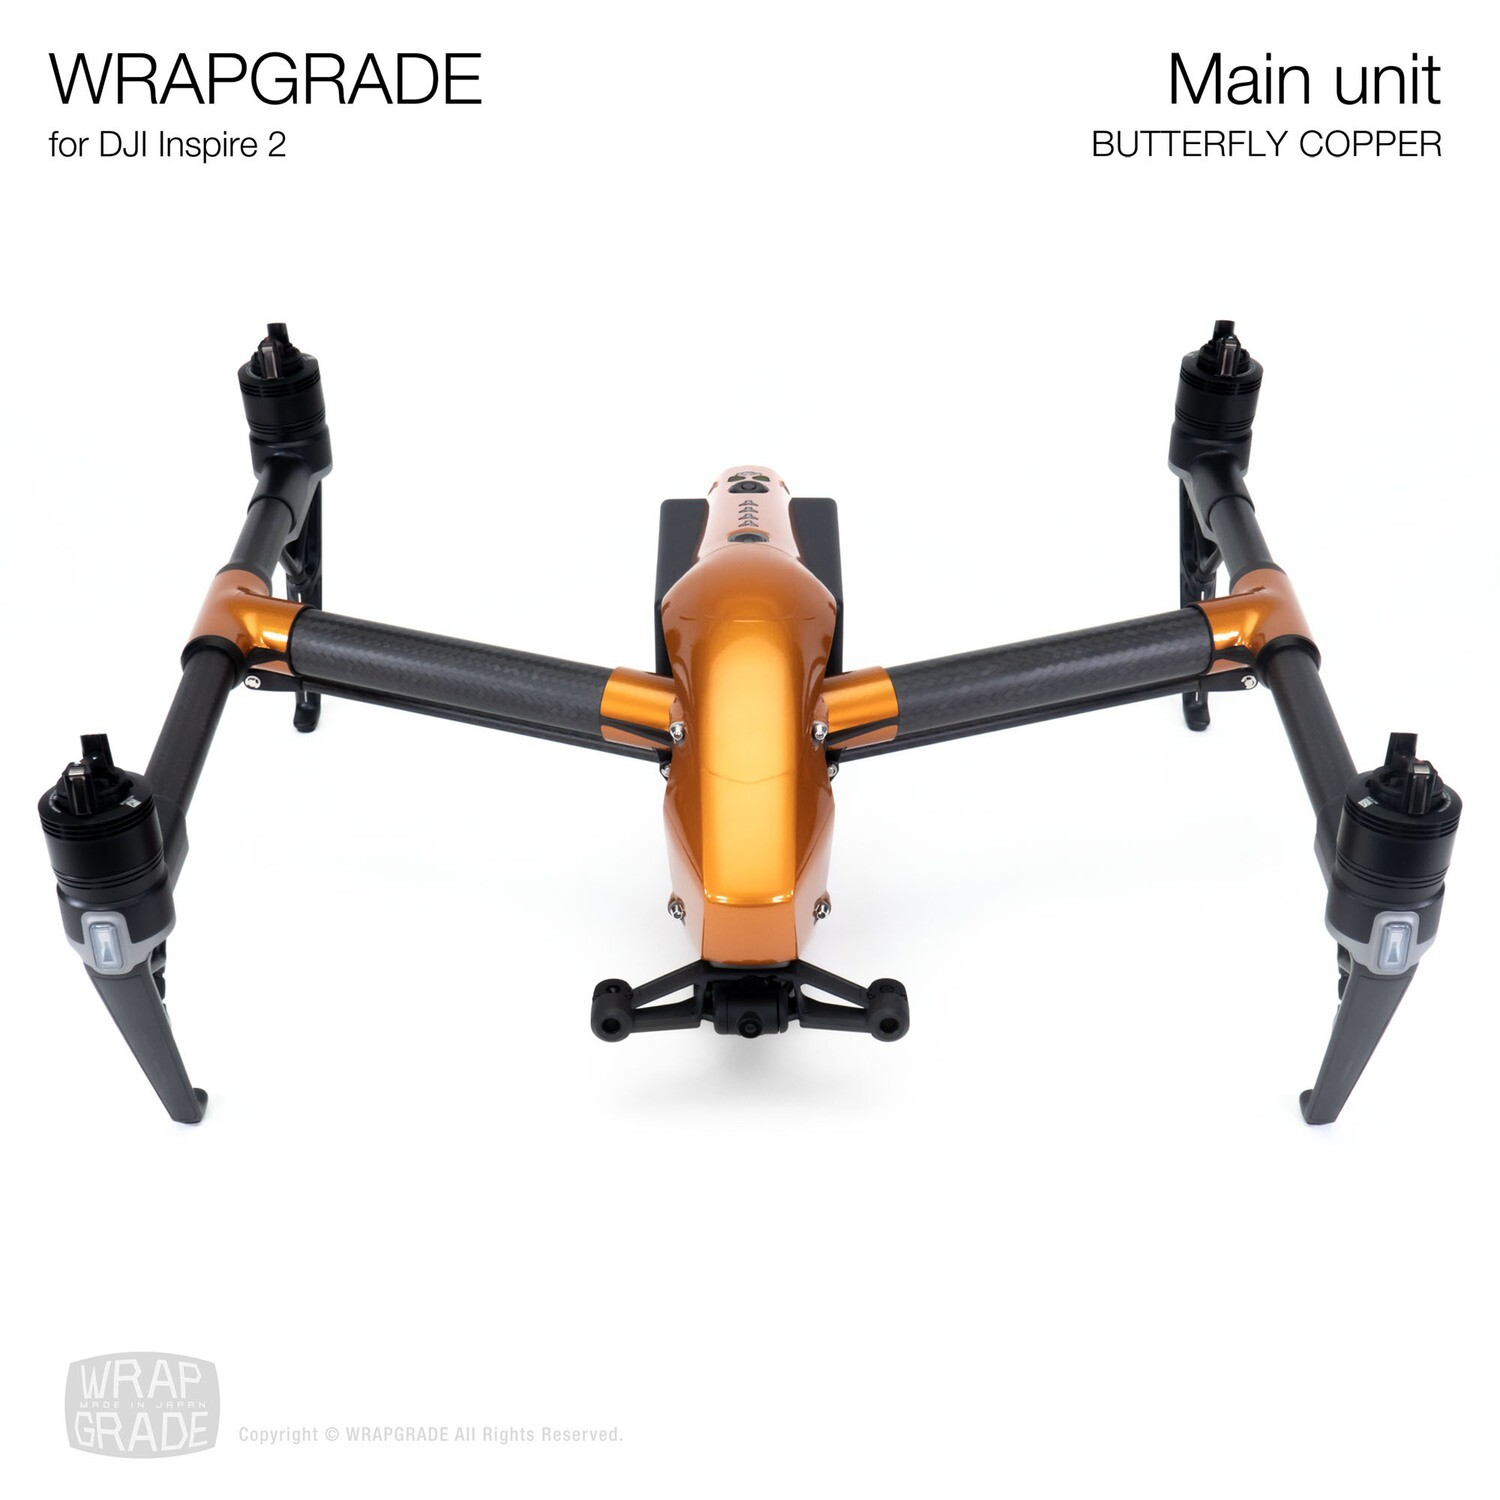 WRAPGRADE for DJI Inspire 2 | Main Unit (BUTTERFLY COPPER)